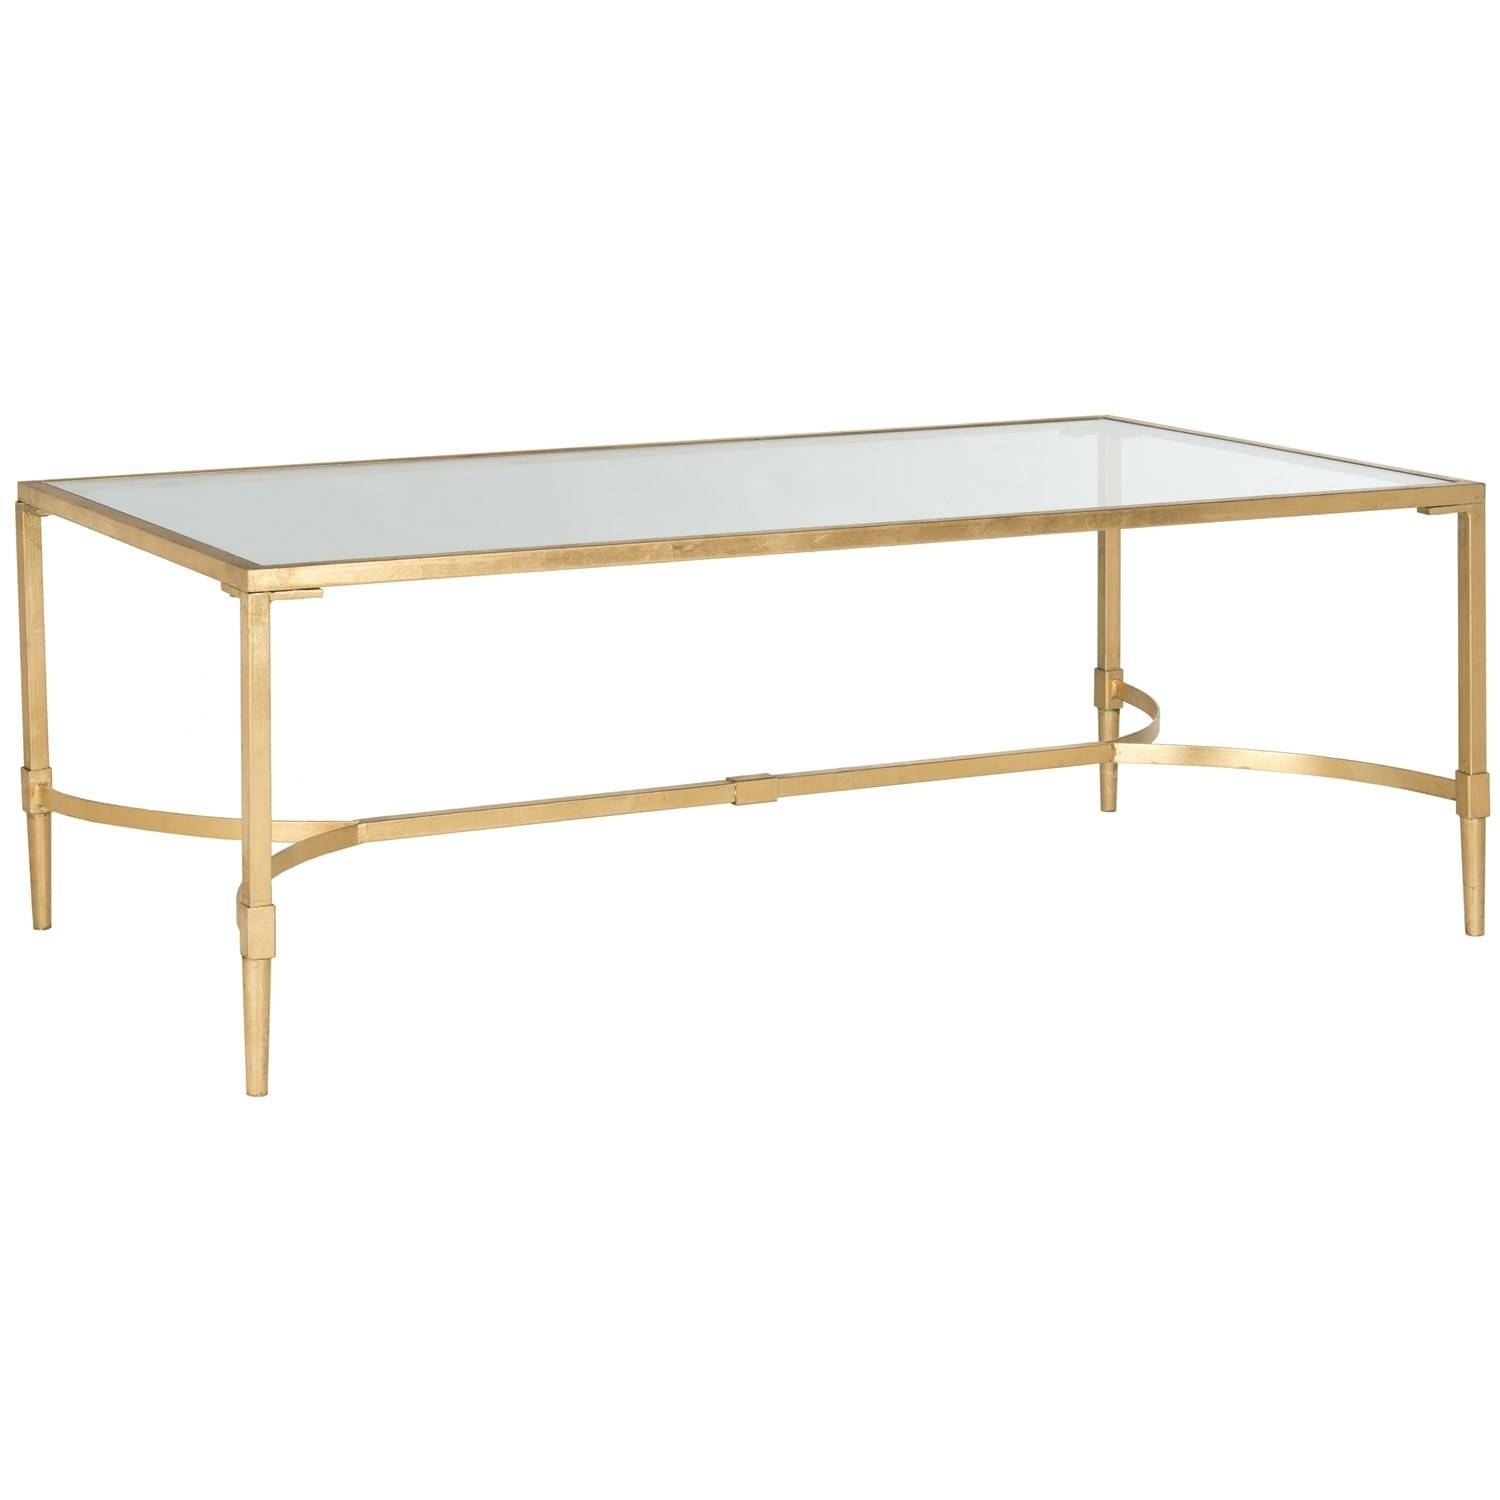 Safavieh Antwan Coffee Table | The Simple Stores with regard to Safavieh Coffee Tables (Image 9 of 30)